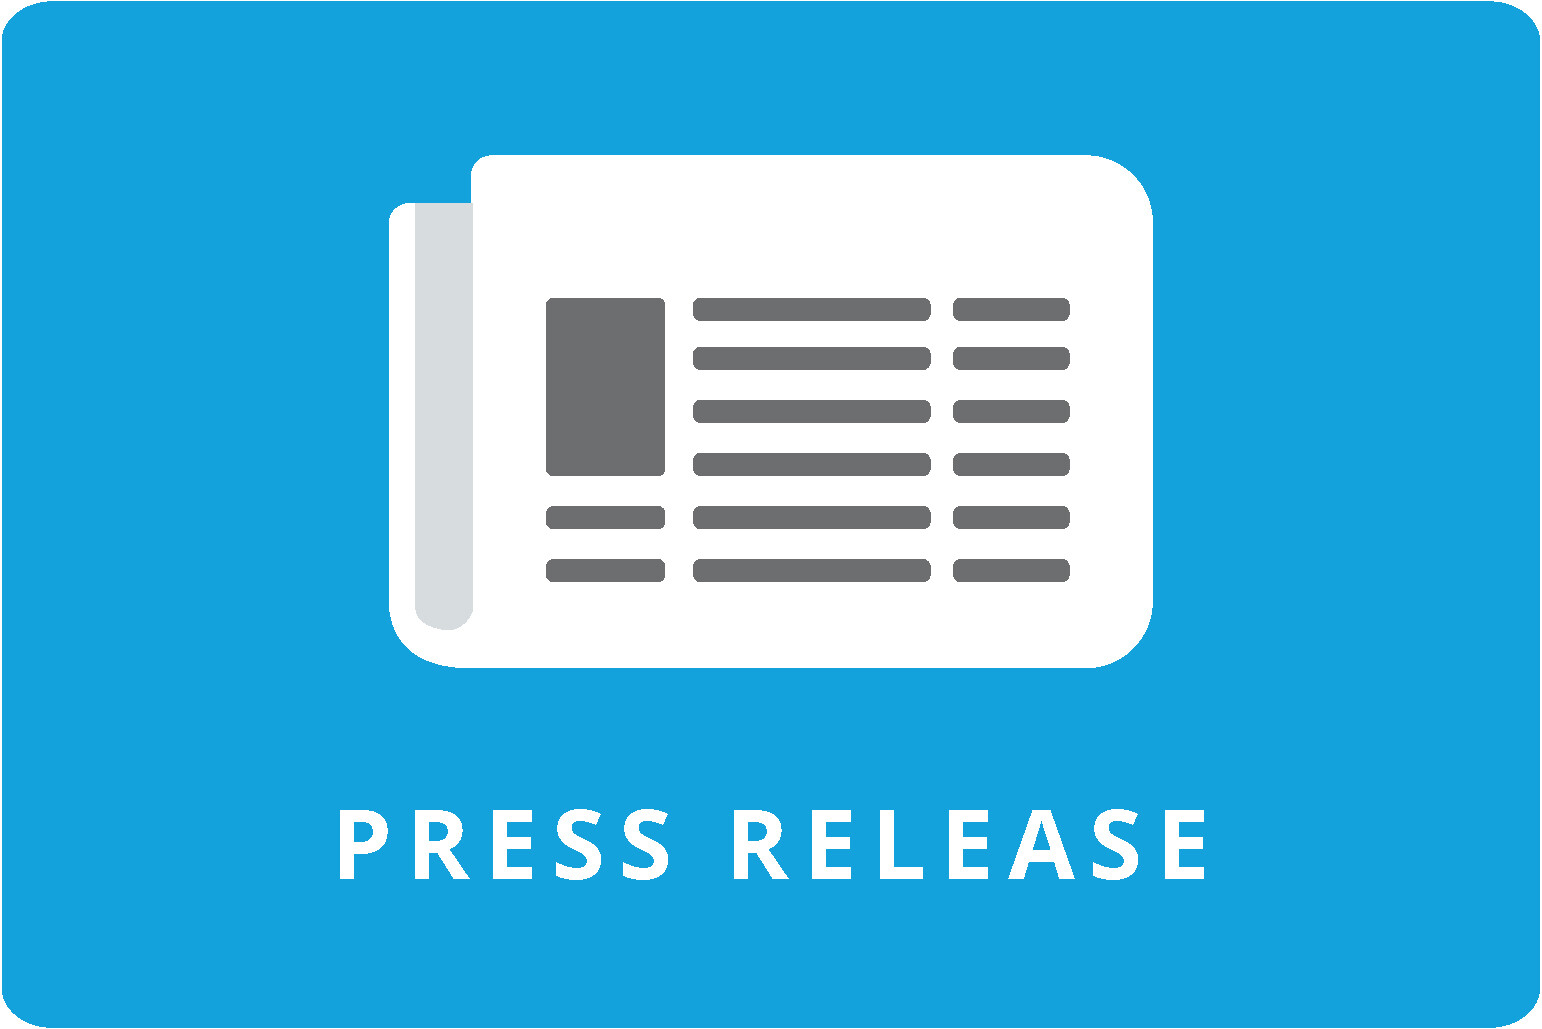 Are Press Releases Still A Relevant Marketing Tool?